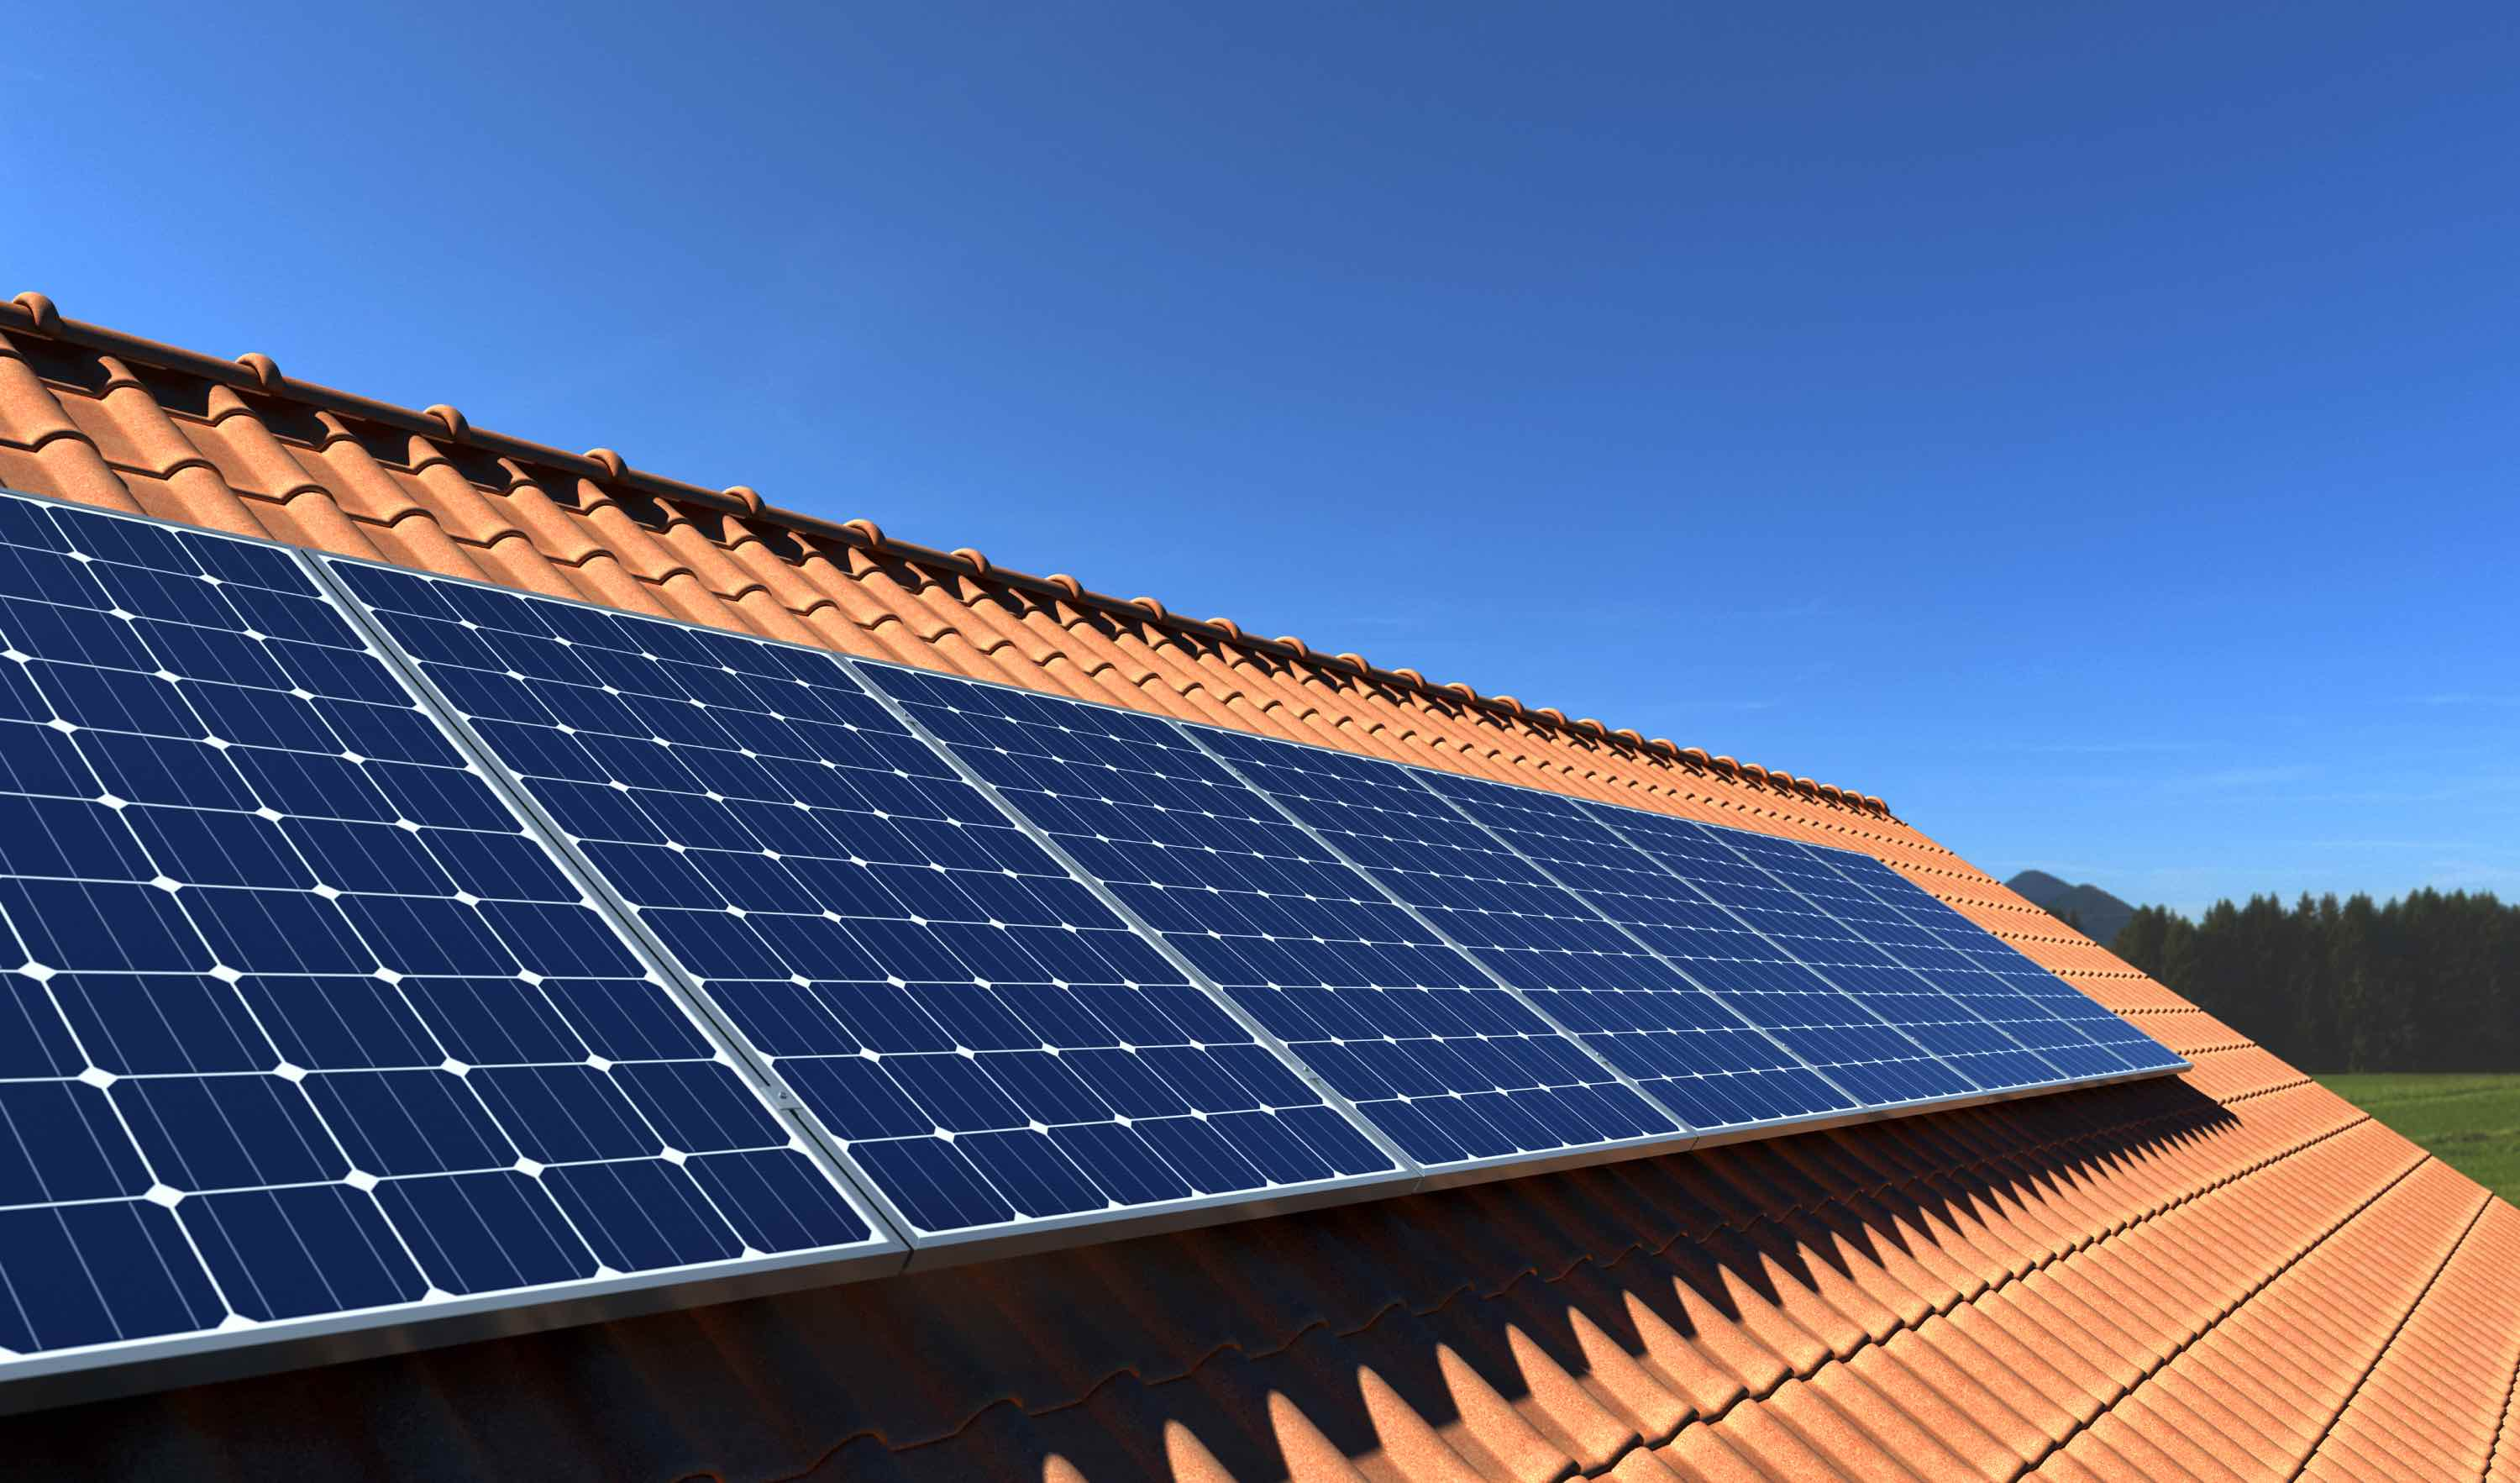 Looking for a quality pv solar system? Solar energy in South Africa is a no-brainer, you just need the right partner.